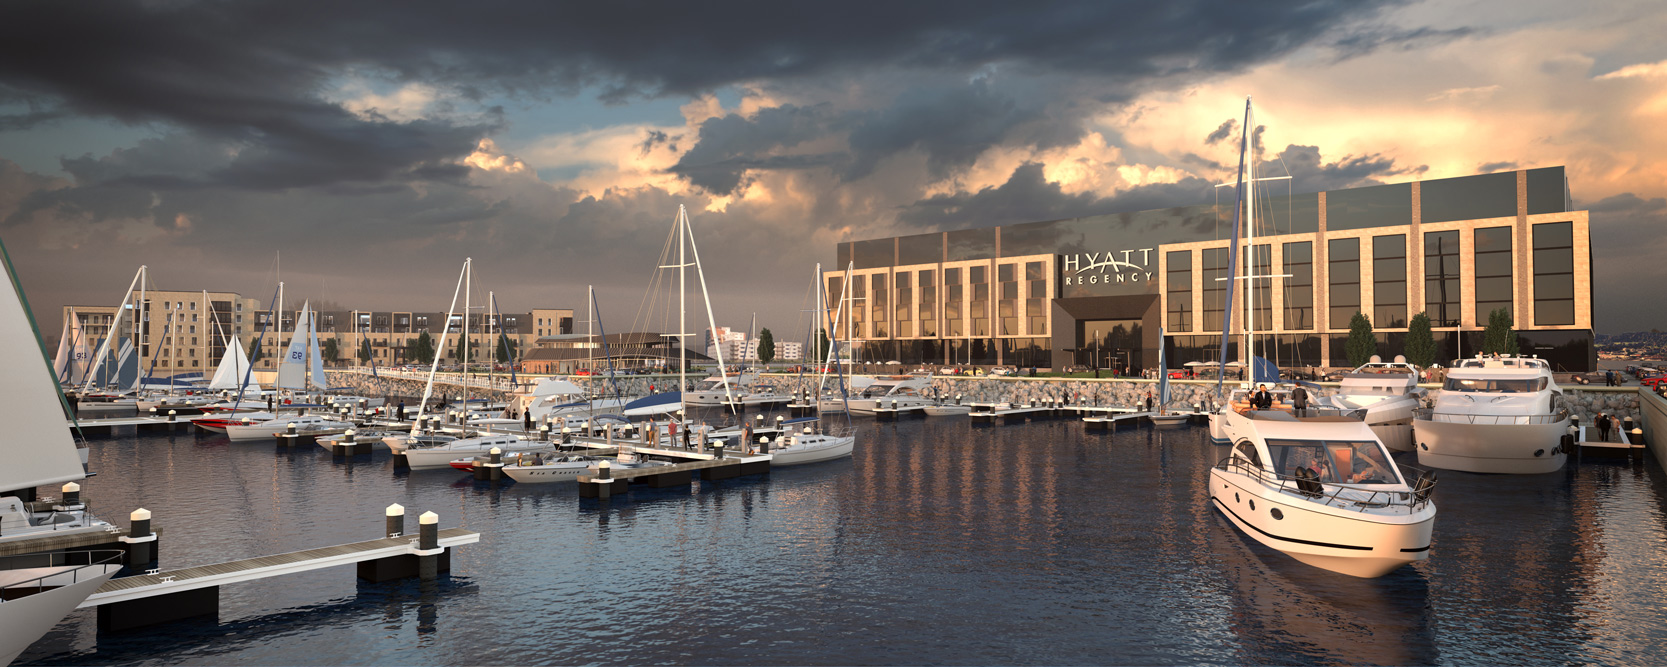 Exterior-3D-Visualization-Marina